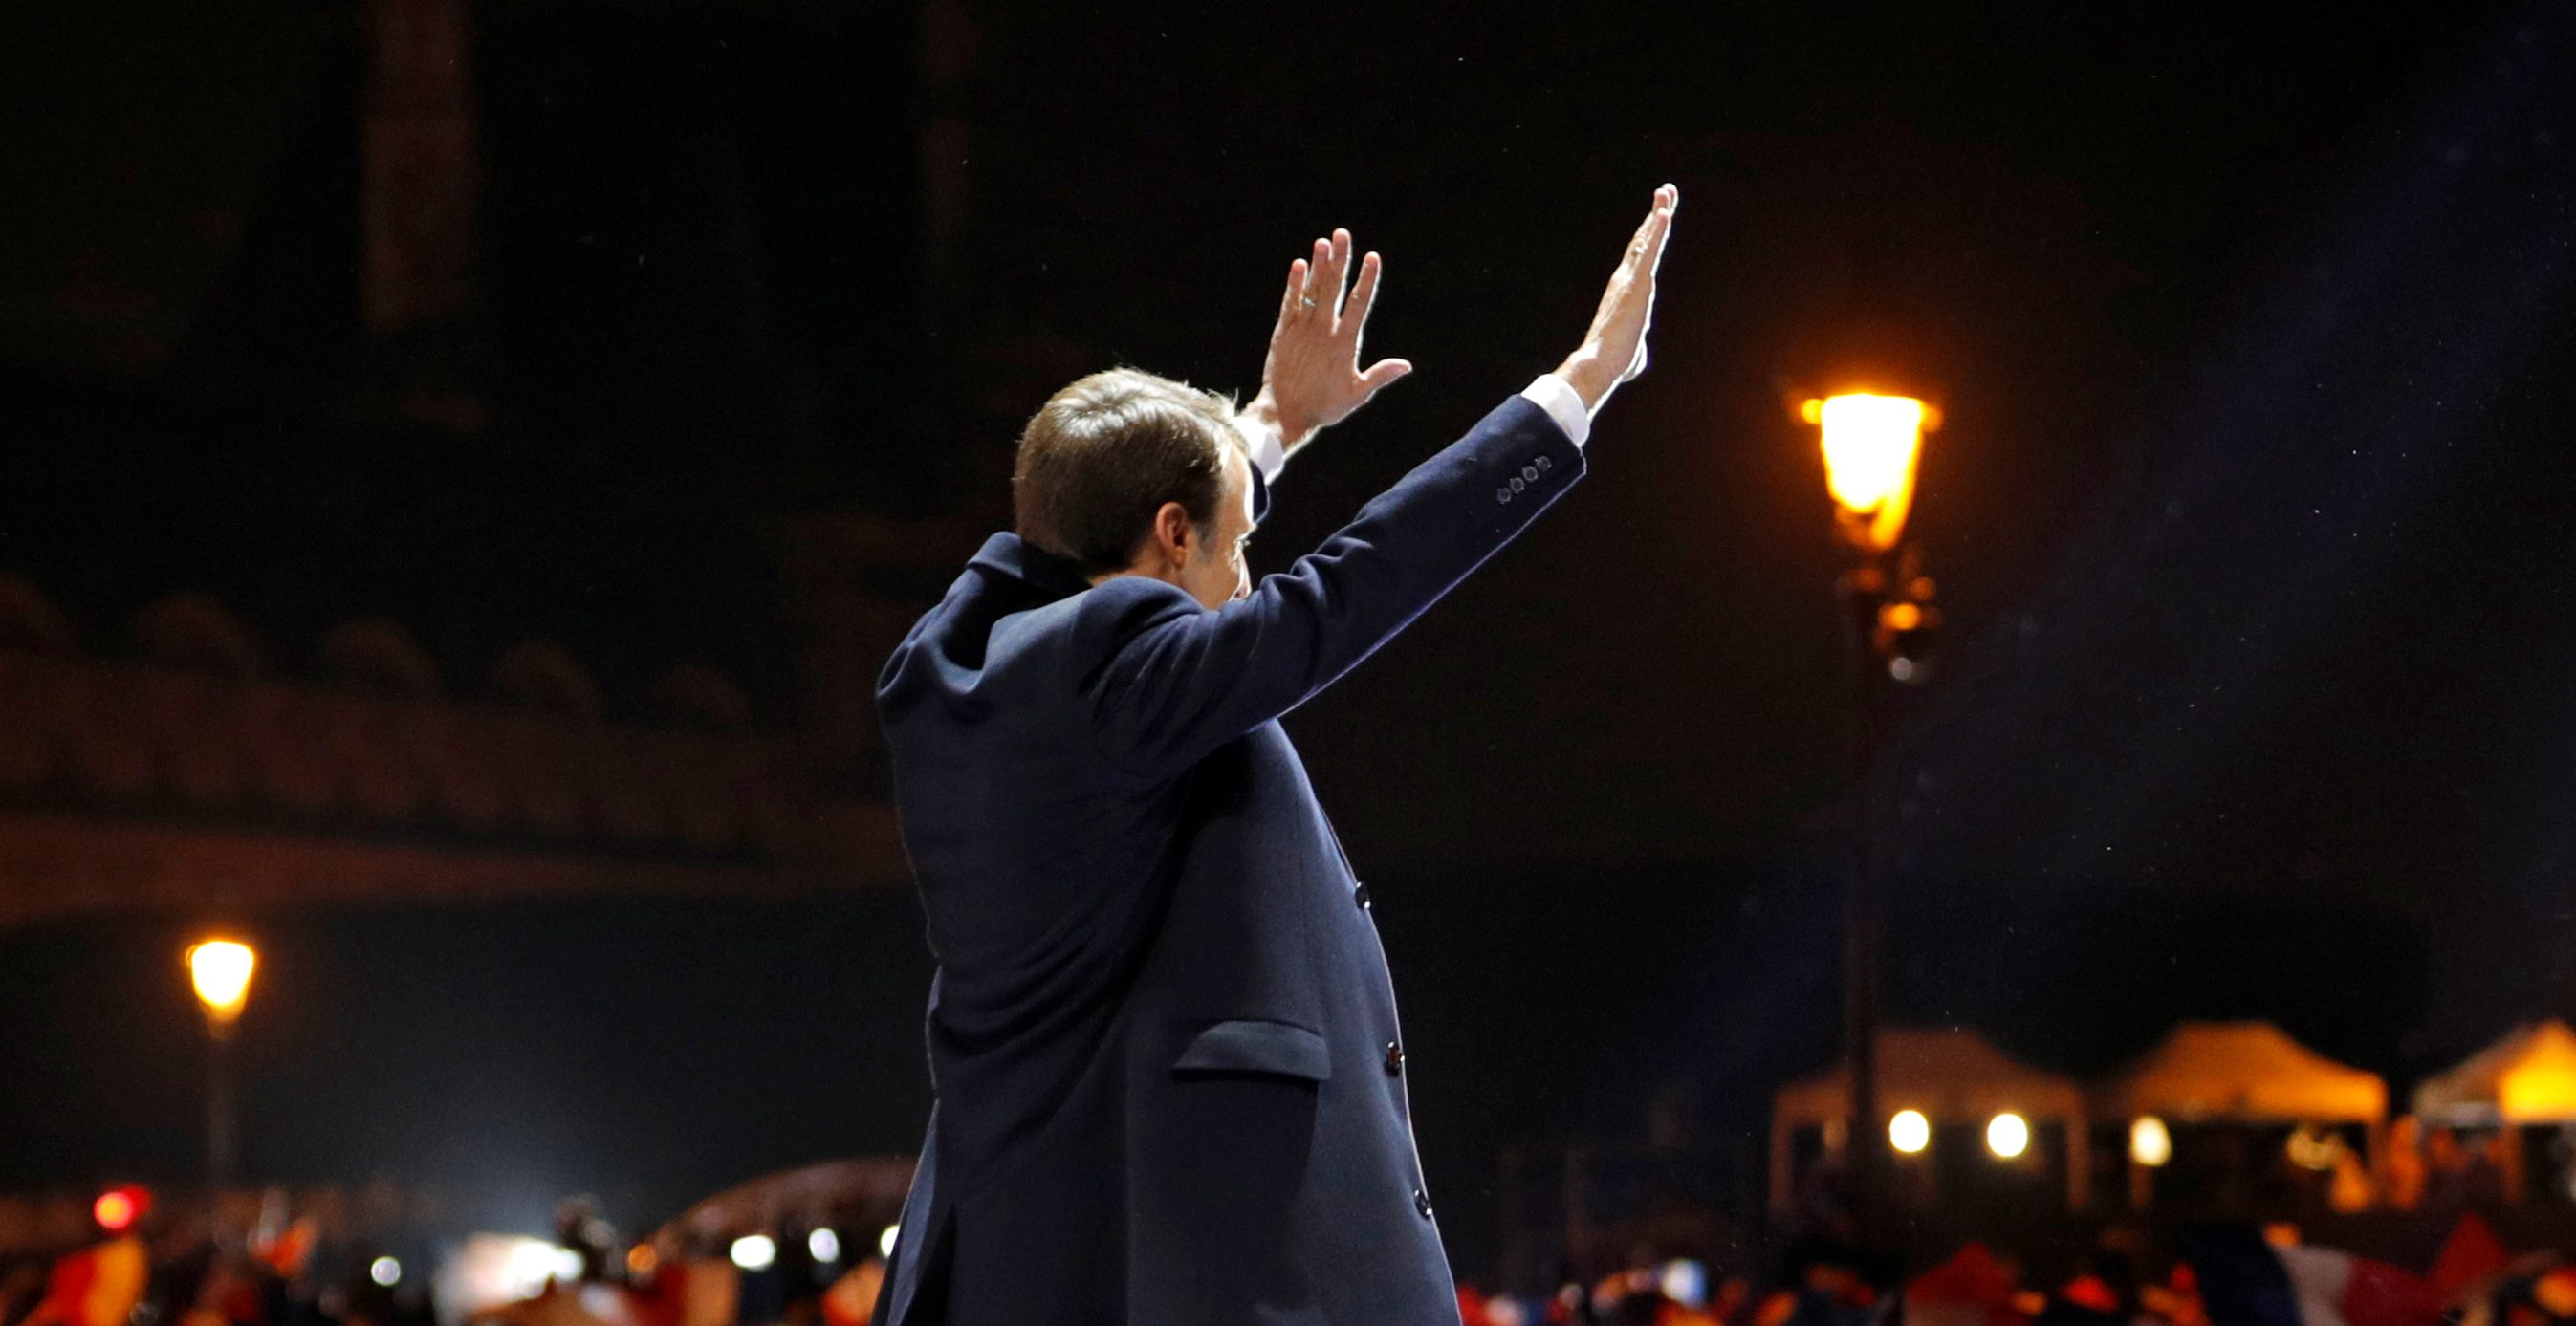 French President-elect Emmanuel Macron arrives on the stage at his victory rally near the Louvre museum after results in the 2017 presidential election in Paris, France May 7, 2017. REUTERS/Philippe Wojazer - RTS15KX5